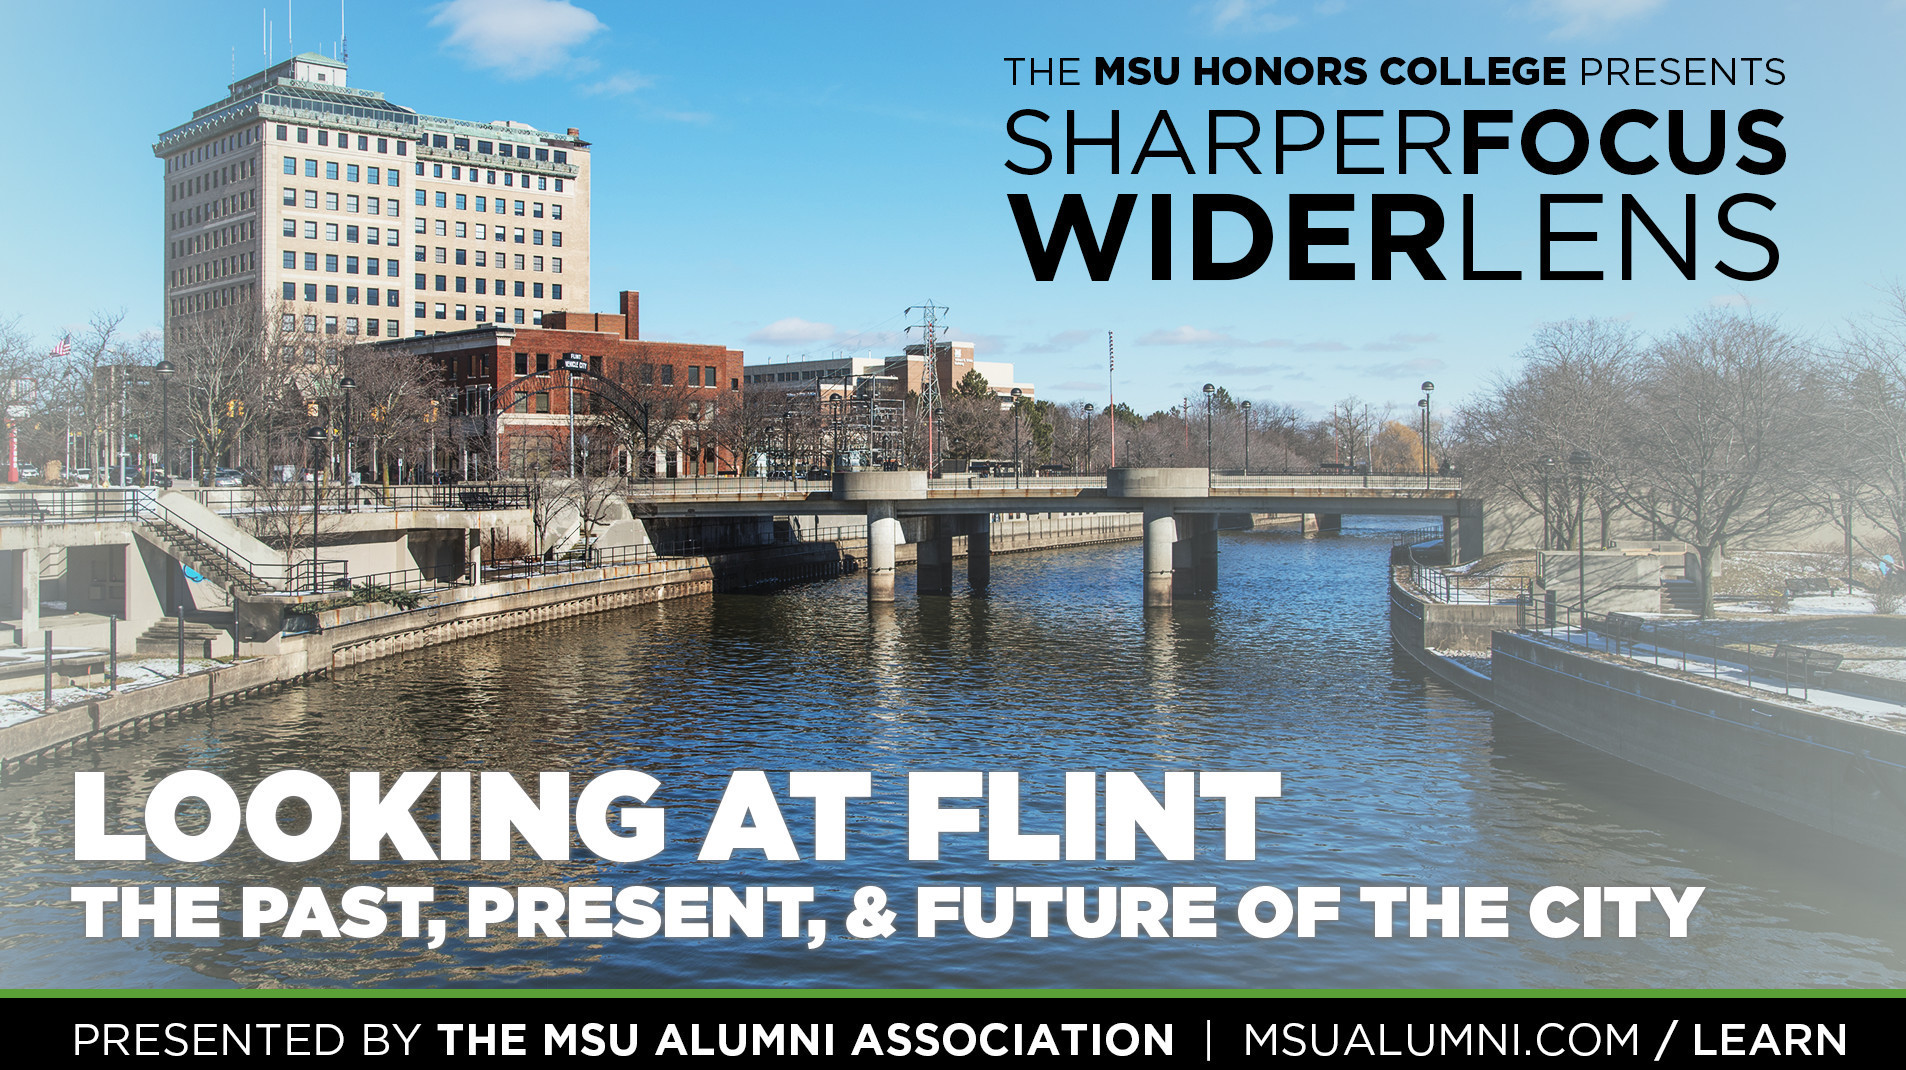 livestream cover image for SFWL | Looking at Flint: The Past, Present, & Future of the City